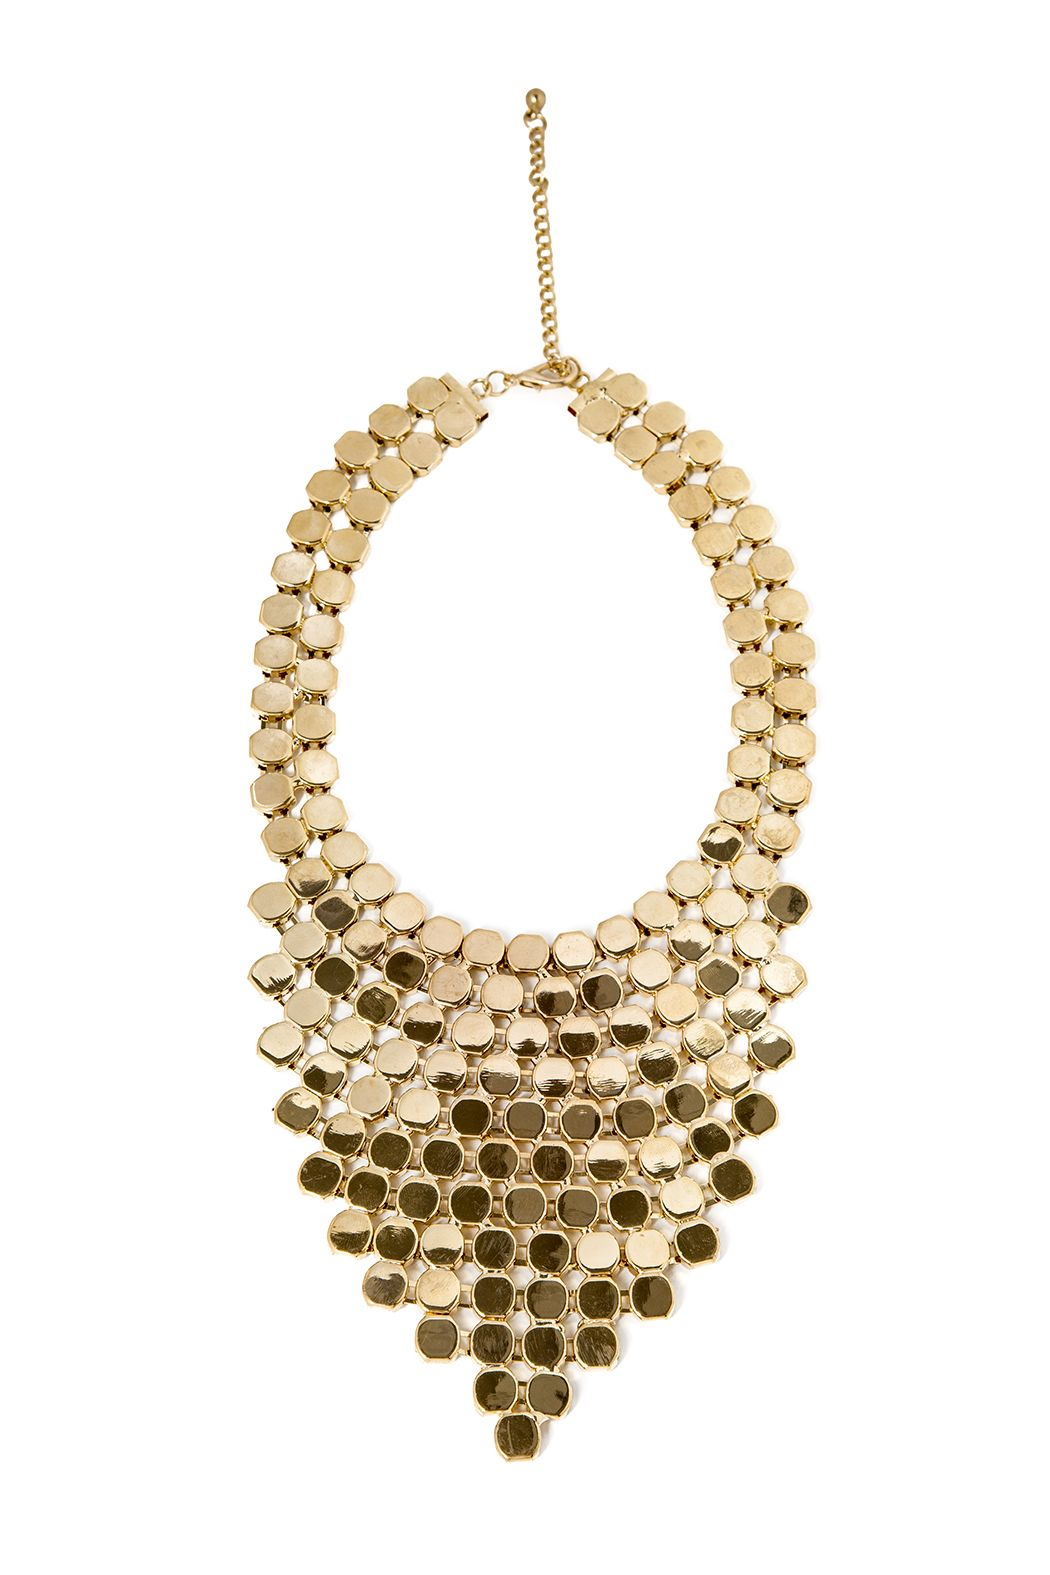 Gold chandelier necklace edgy chic bibs and statement necklaces gold chandelier necklace aloadofball Choice Image